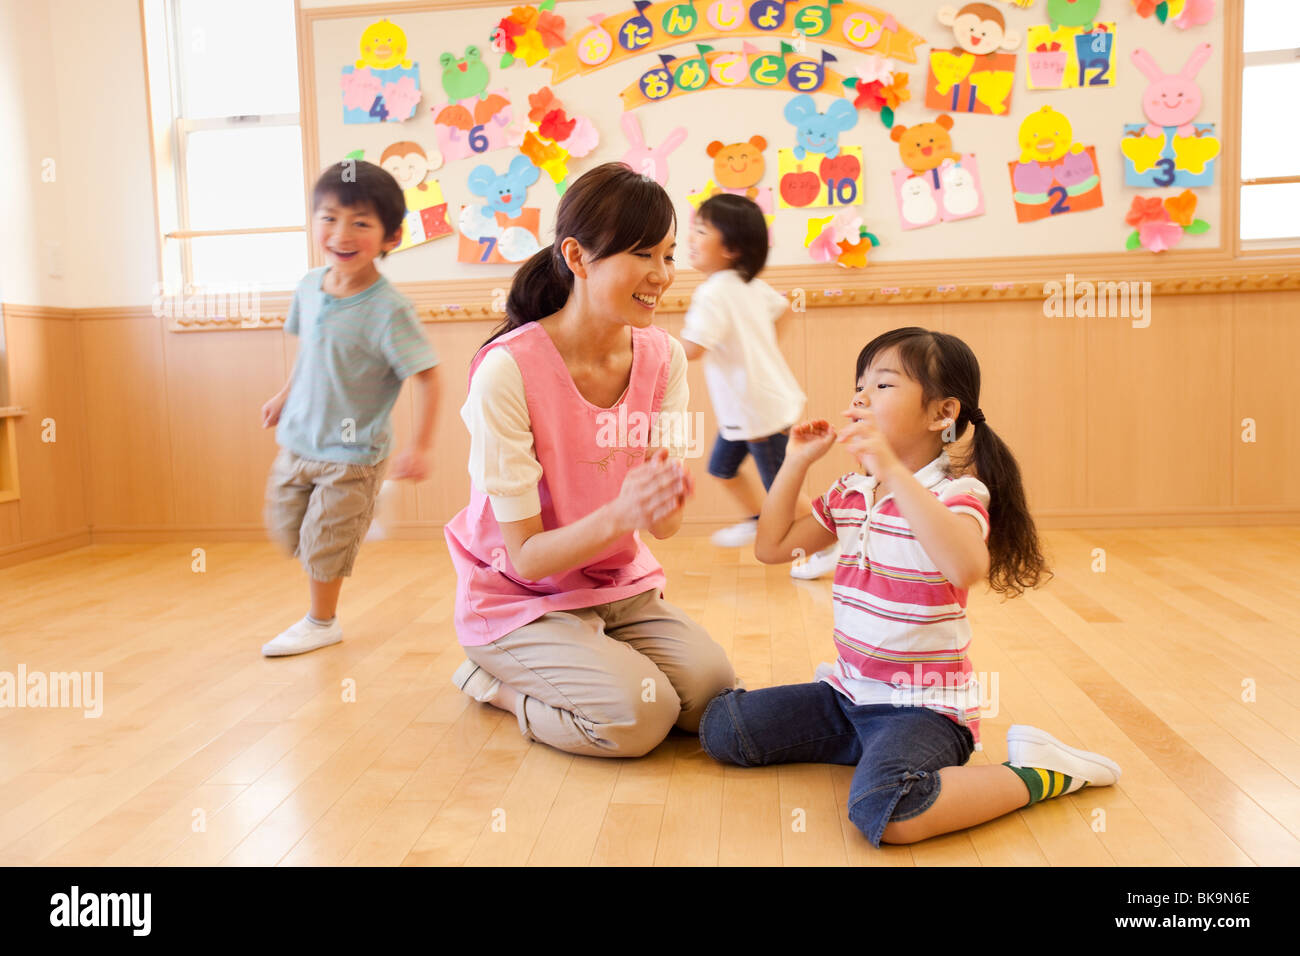 Nursery Teacher and Children Playing at Day-care Center - Stock Image